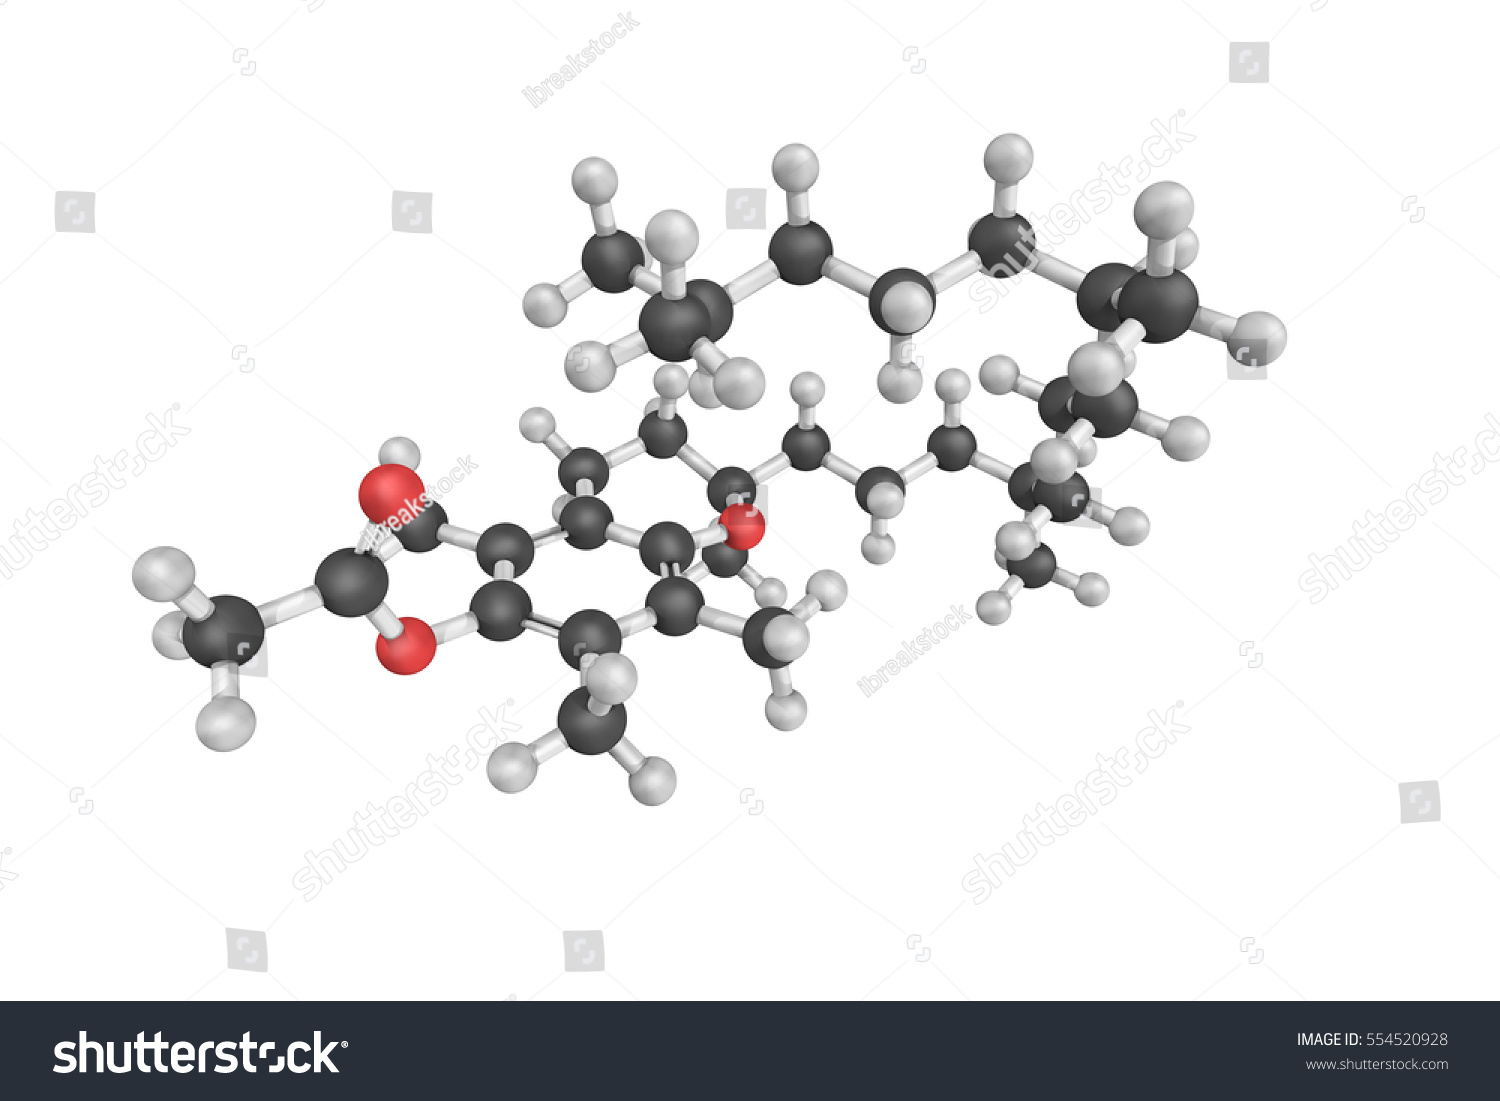 3d structure tocopheryl acetate known vitamin stock illustration 3d structure of tocopheryl acetate also known as vitamin e acetate a common vitamin biocorpaavc